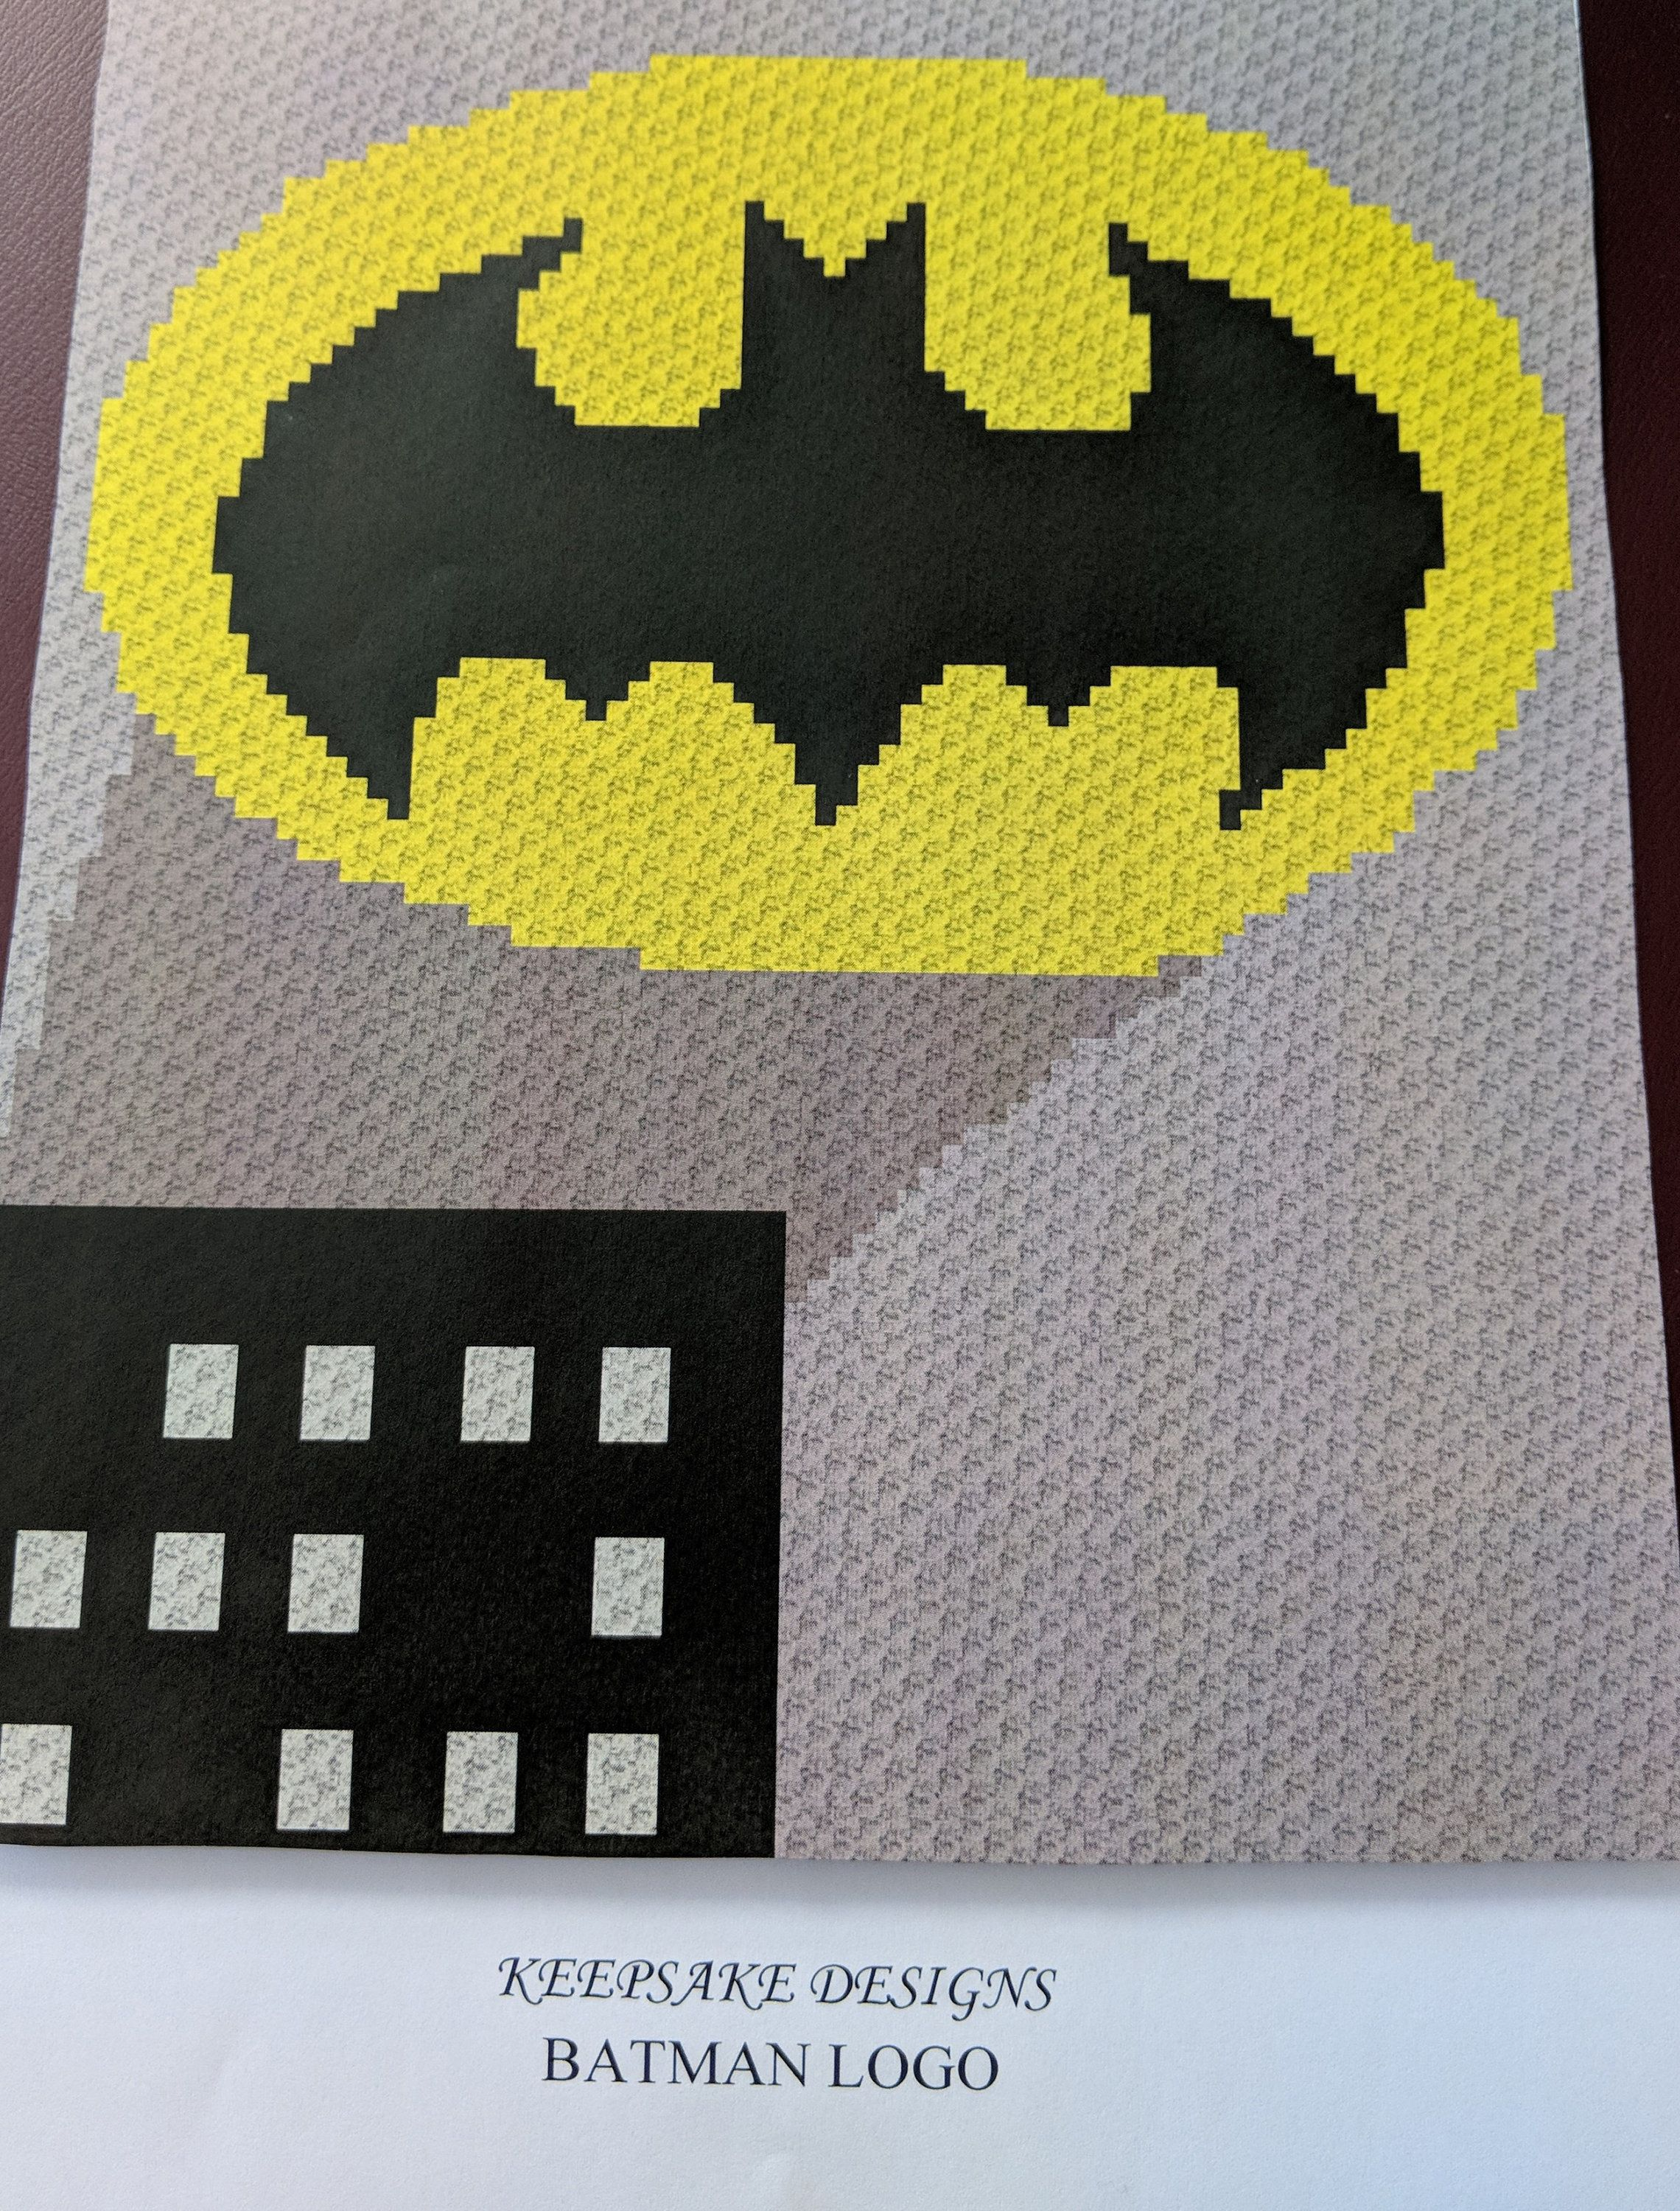 Batman Logo Teenadult Size Corner To Corner Crochet Blanket